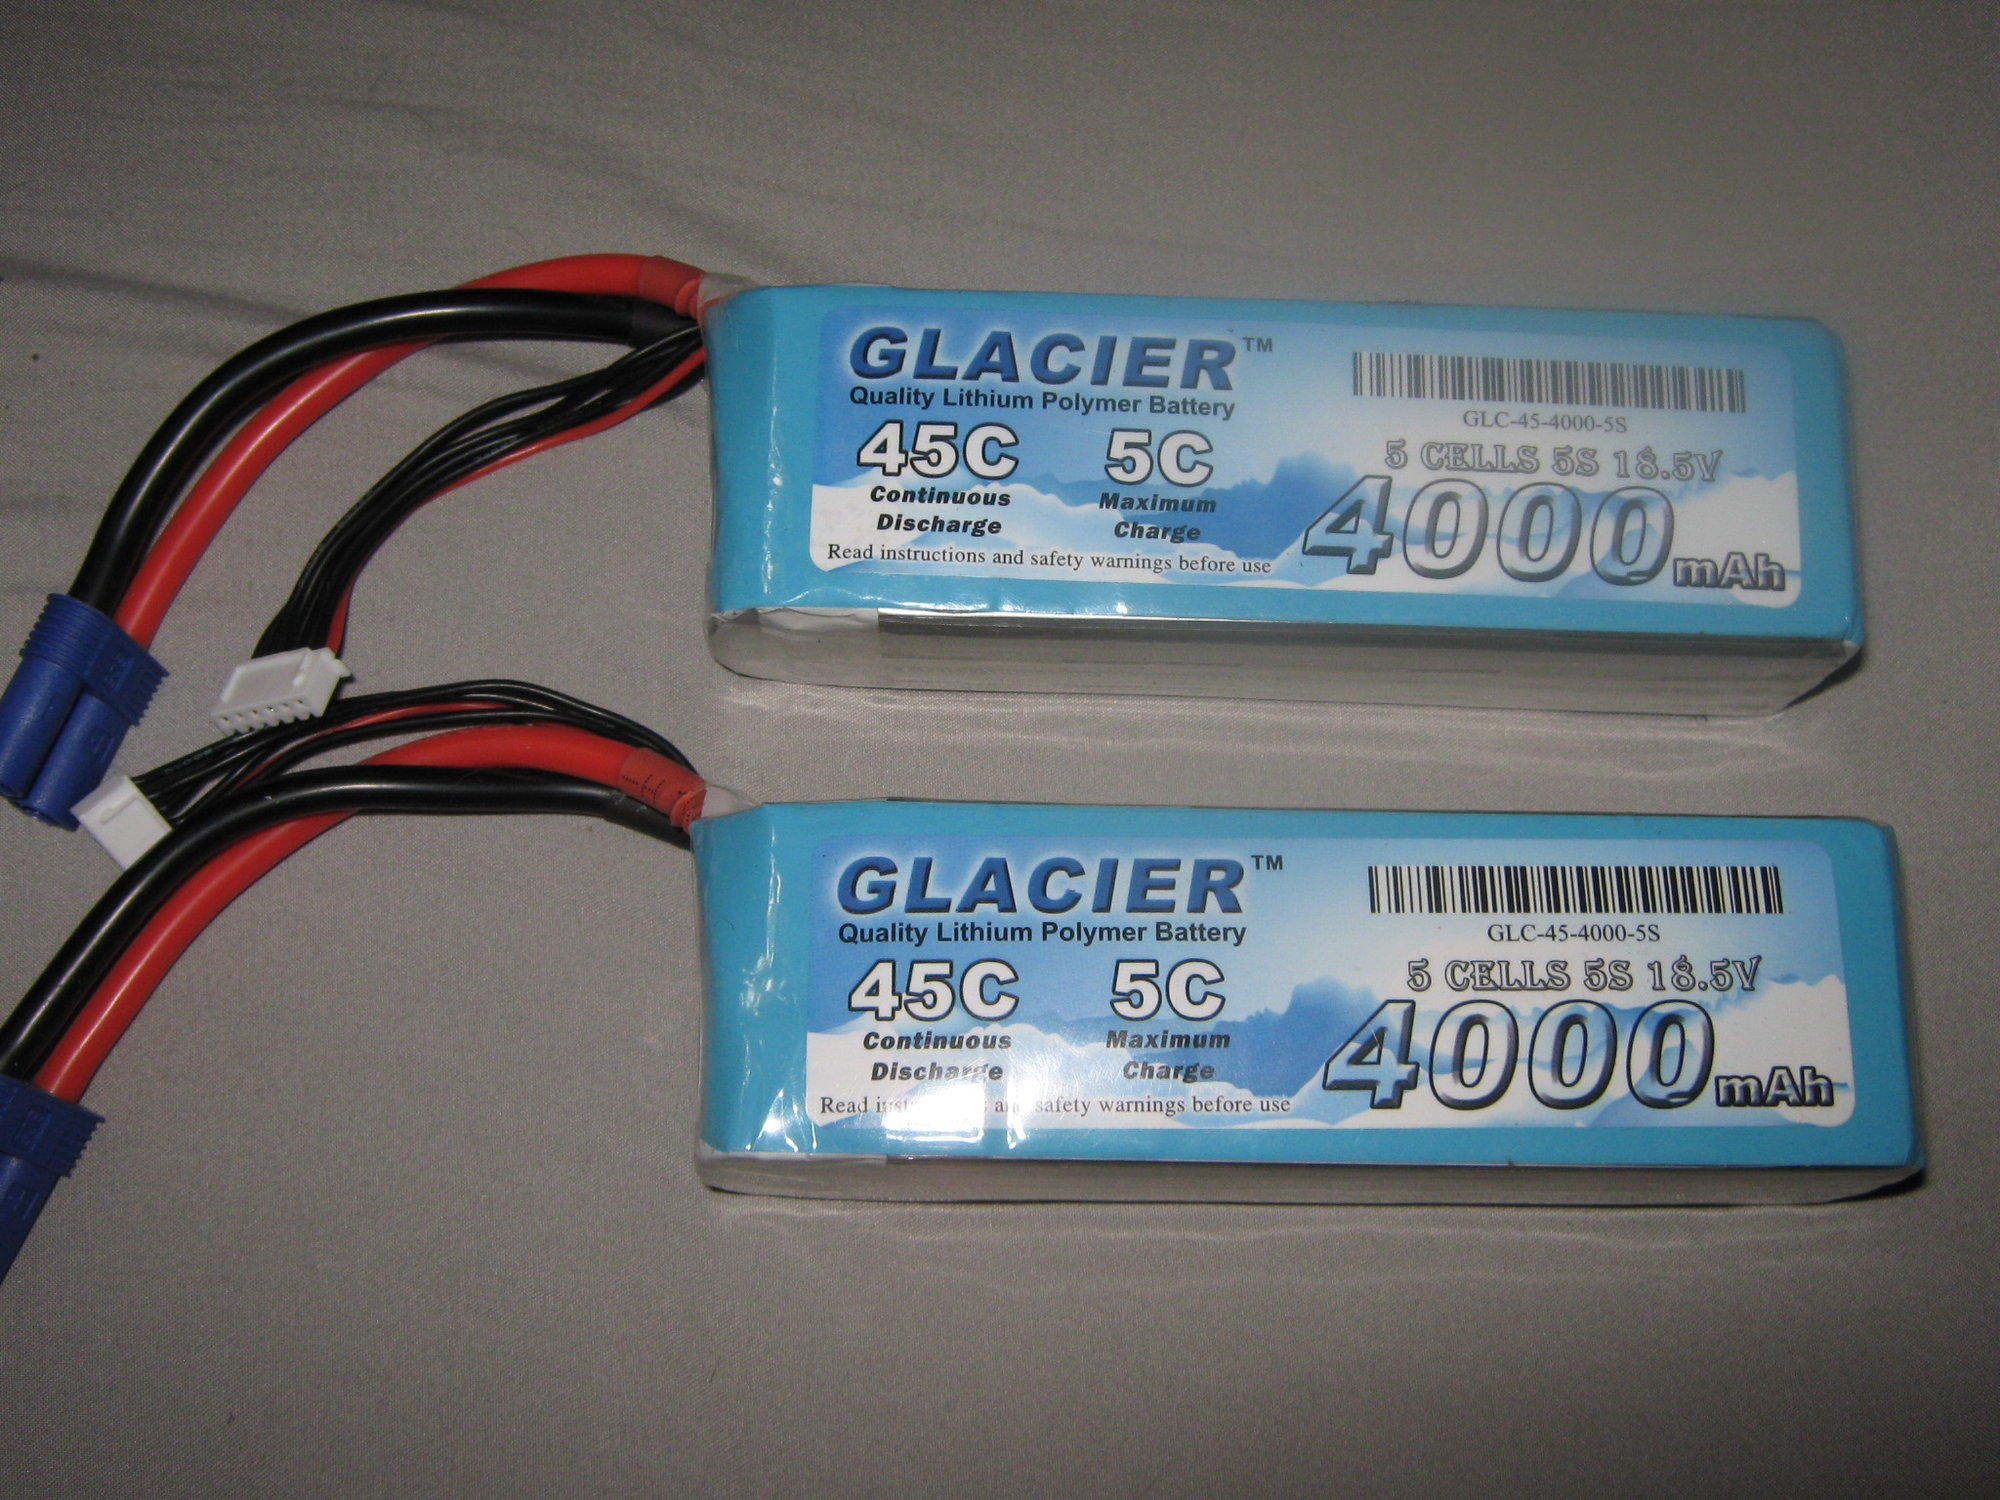 2 Glacier 4000mah 5s Lipo 45C Charged 3 times - RCU Forums